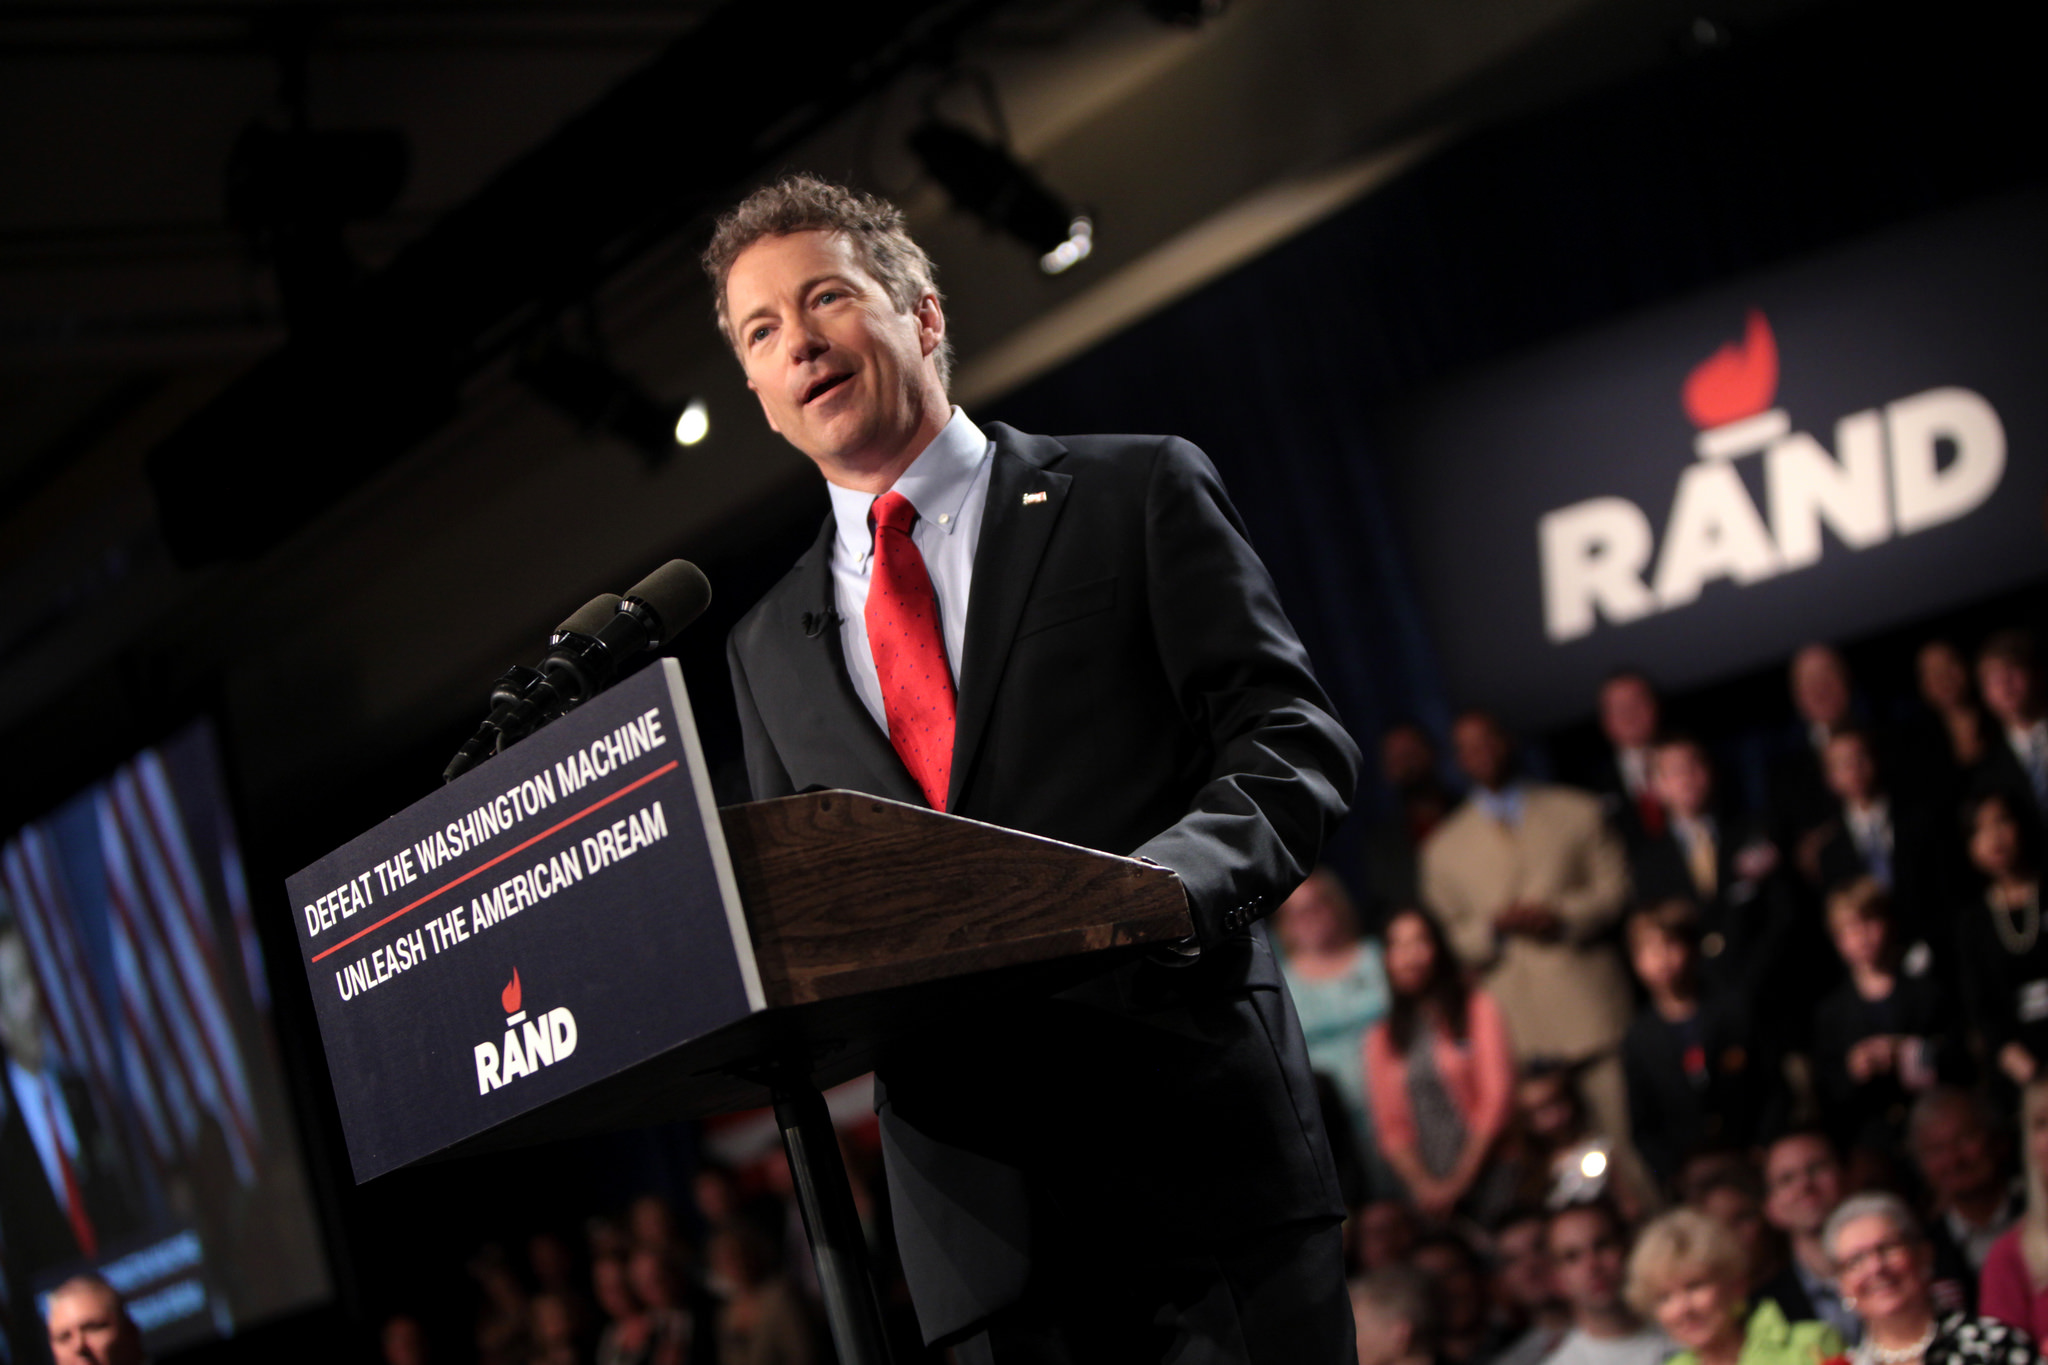 Four Things We Know About Rand Paul's Immigration Policy Views